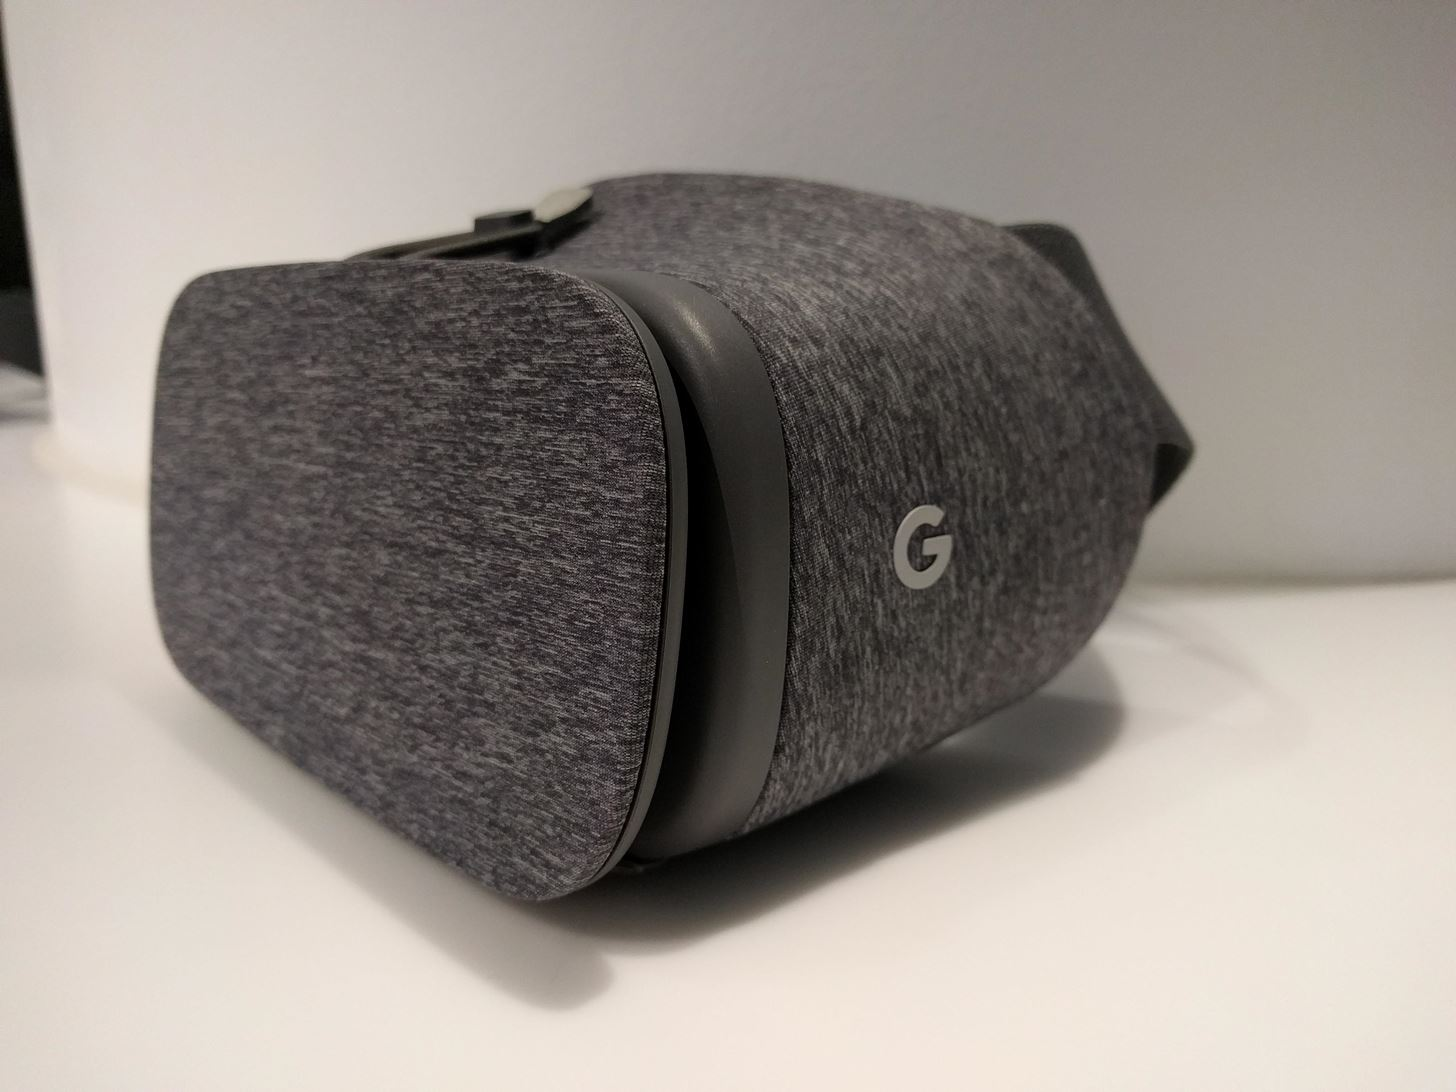 Hands-on: Google's Daydream View Feels Like a Hot & Stiff Pair of Sweatpants on Your Face